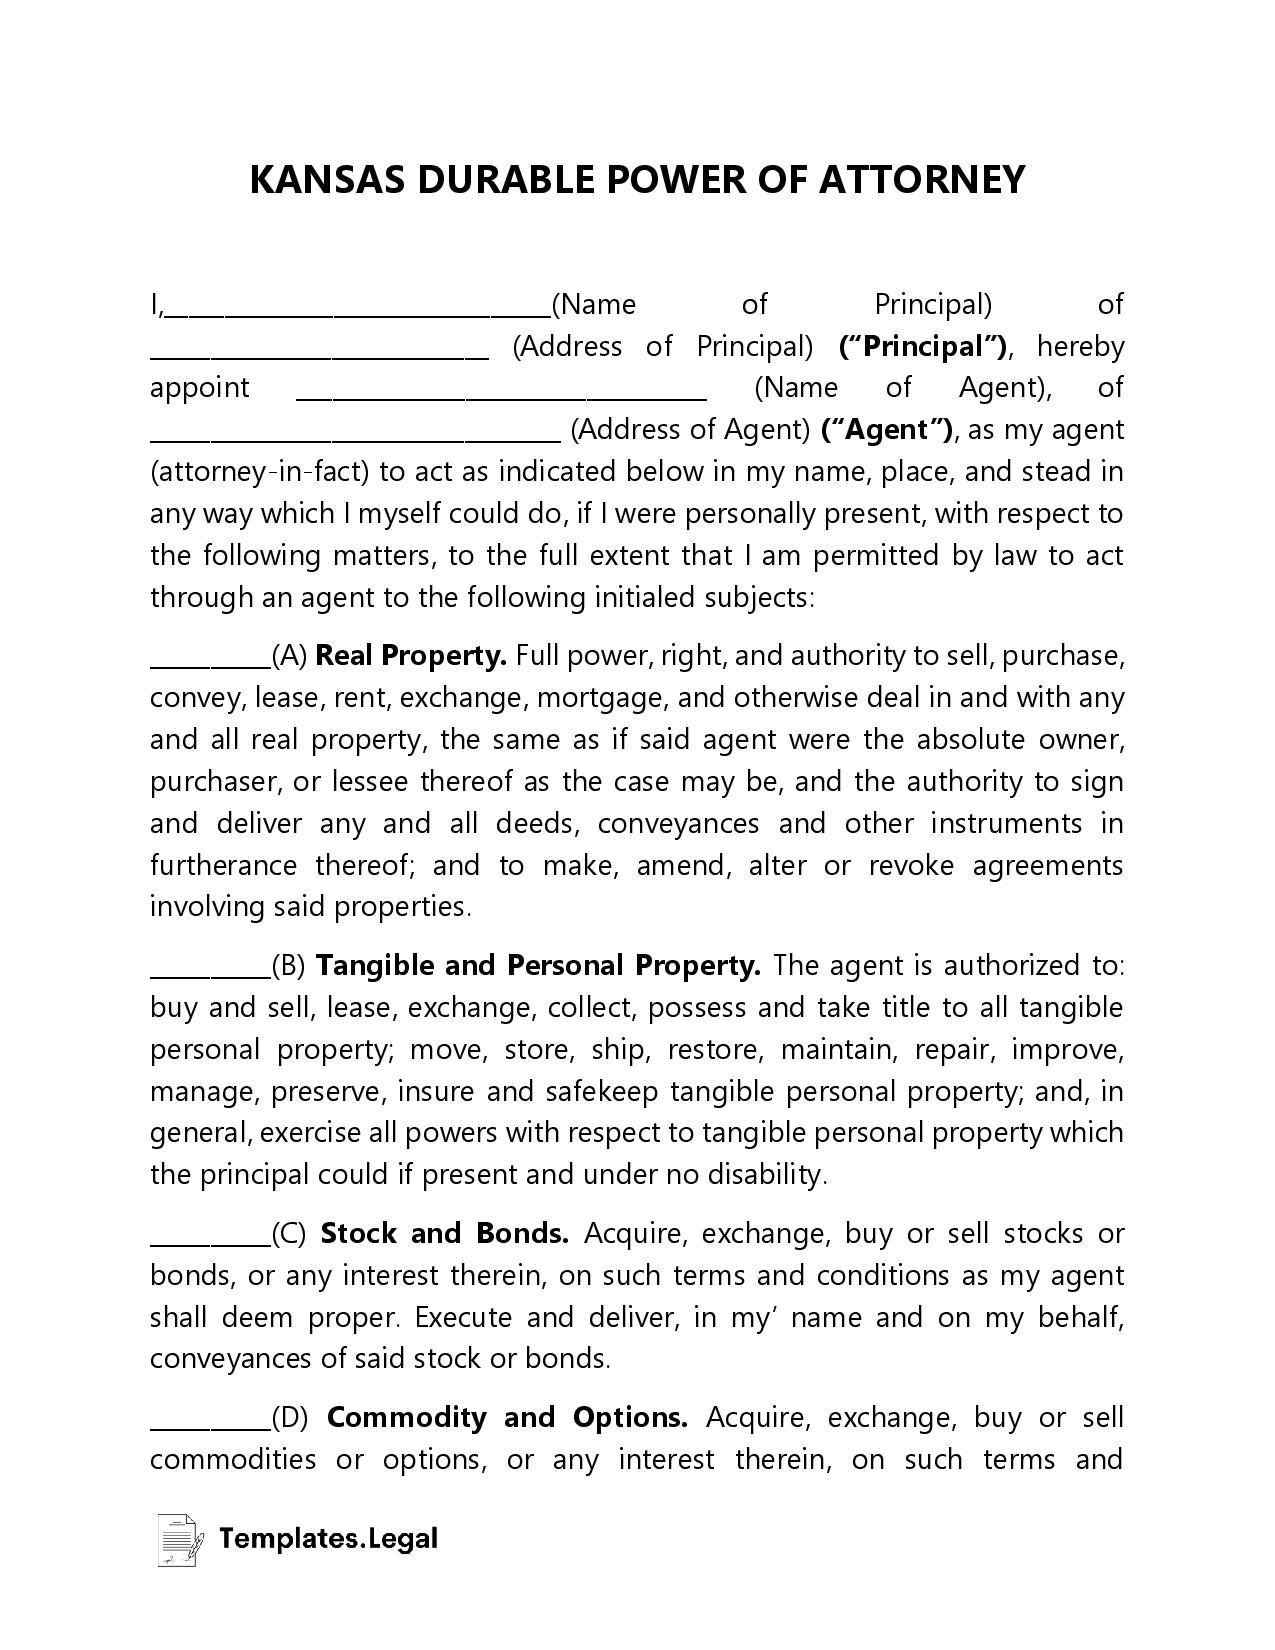 Kansas Durable Power of Attorney - Templates.Legal